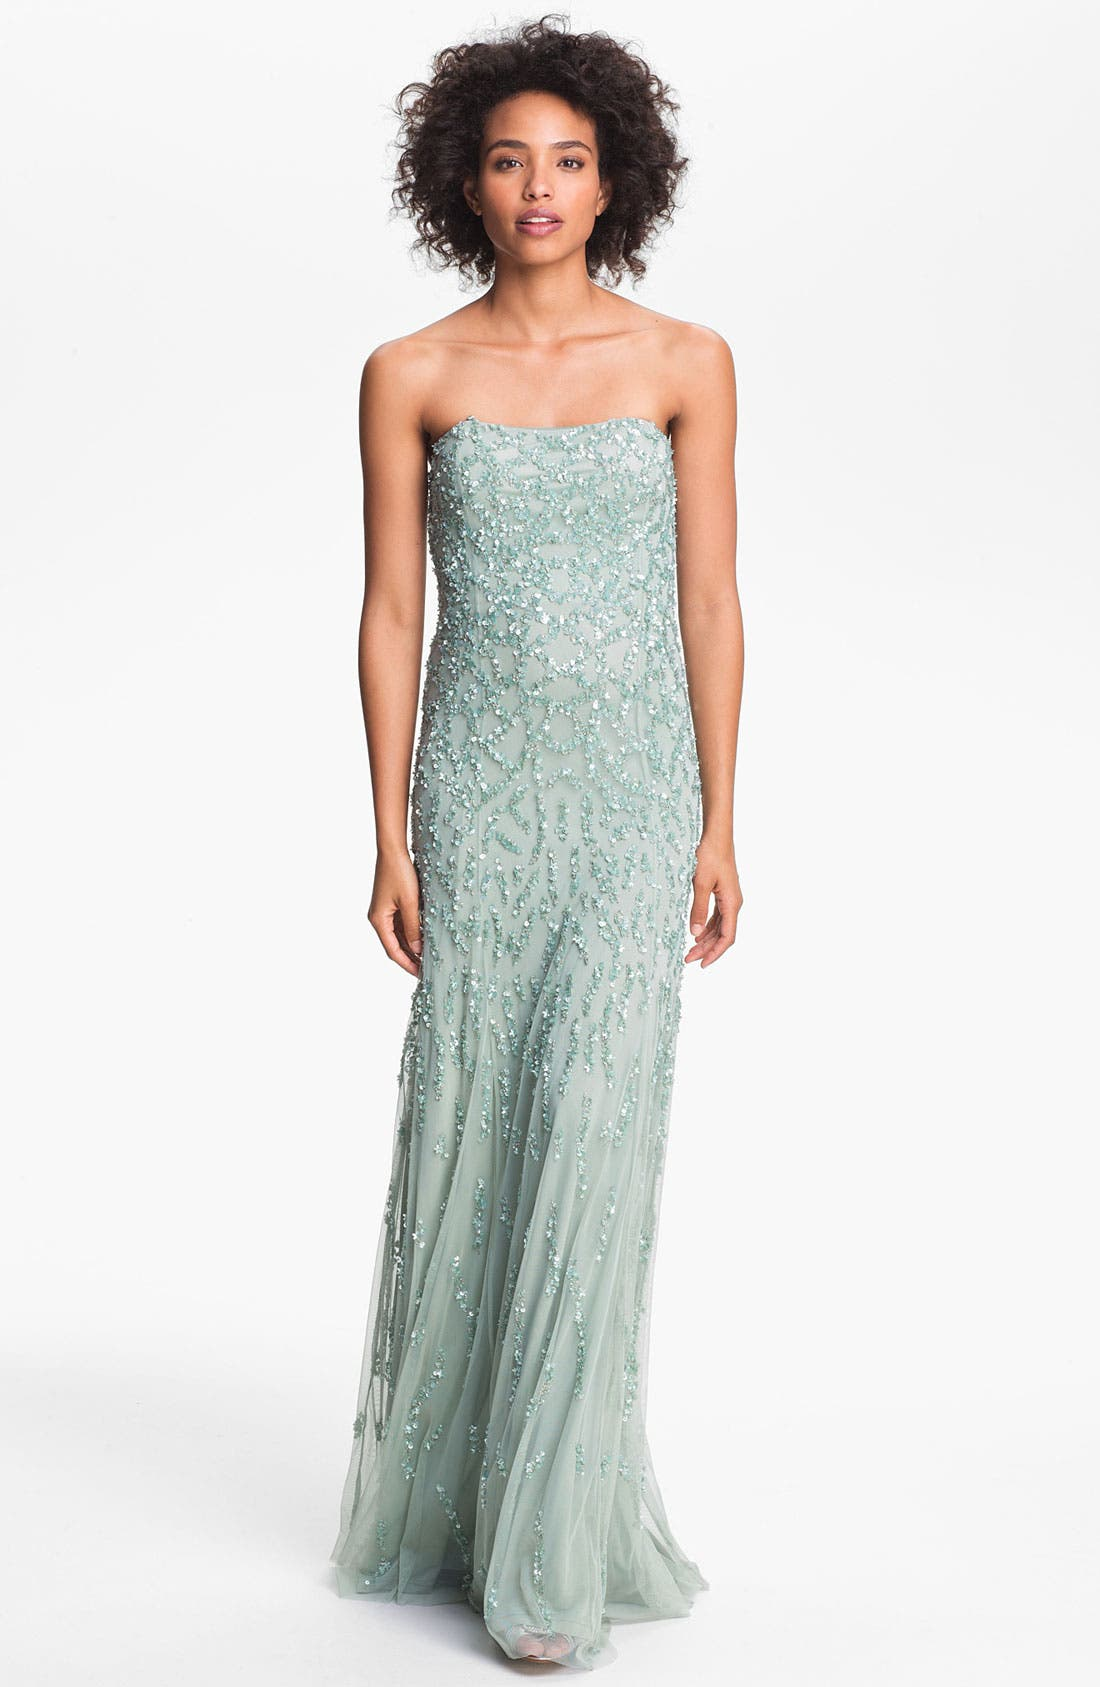 Alternate Image 1 Selected - Adrianna Papell Strapless Beaded Mesh Gown (Online Only)